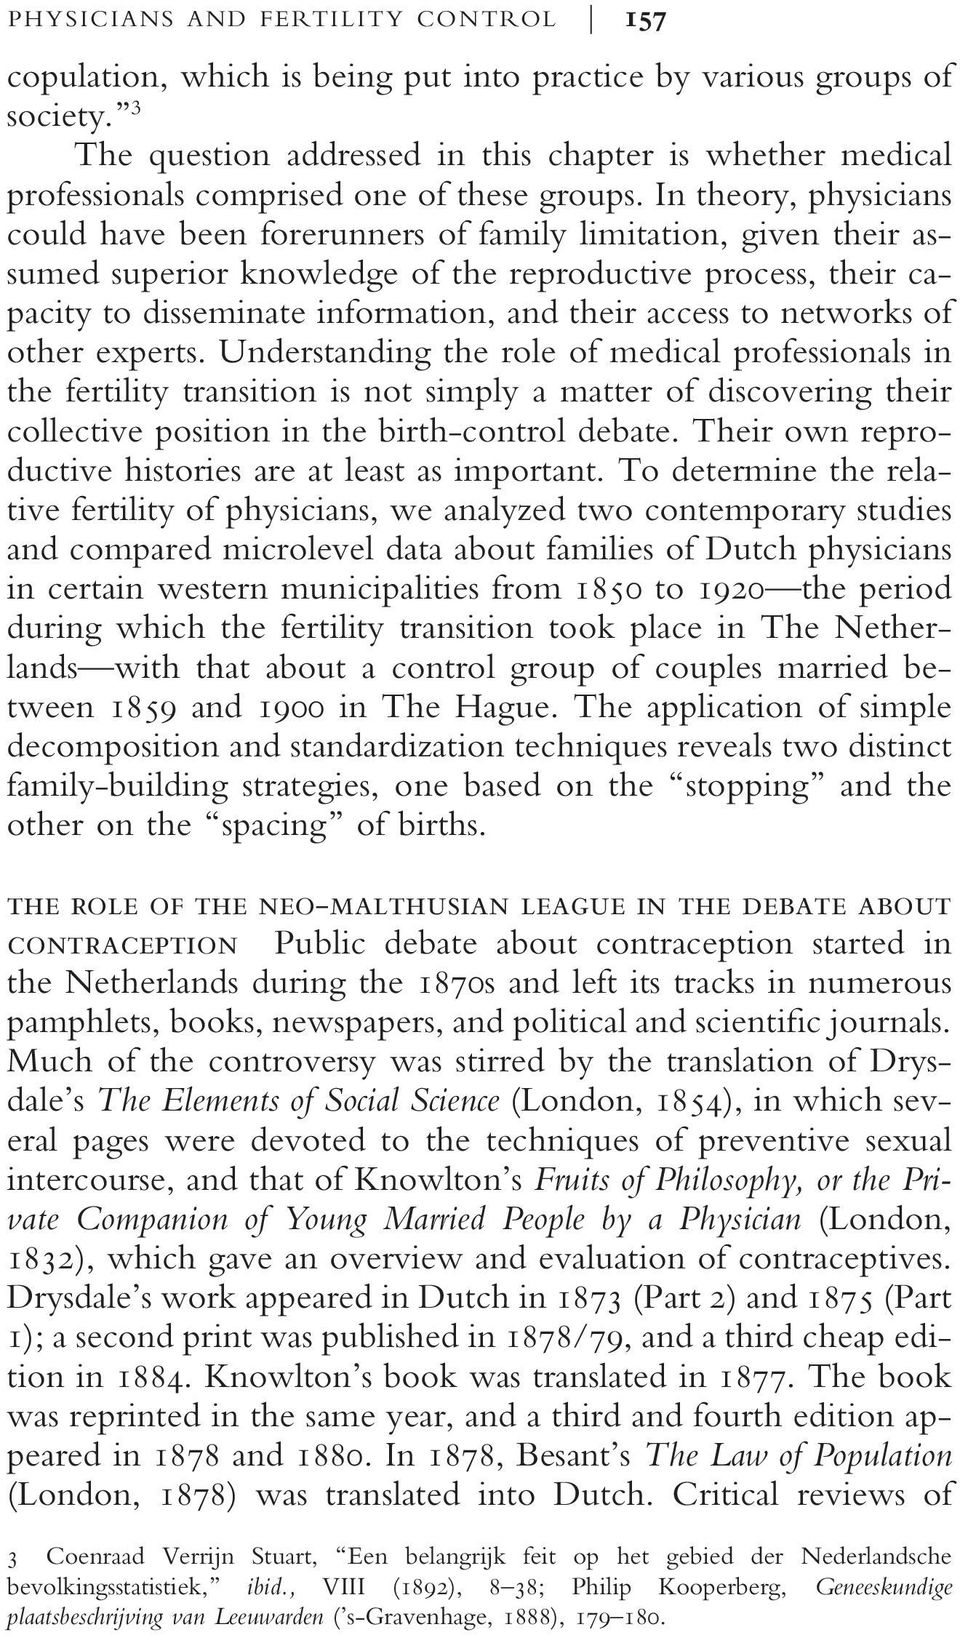 In theory, physicians could have been forerunners of family limitation, given their assumed superior knowledge of the reproductive process, their capacity to disseminate information, and their access